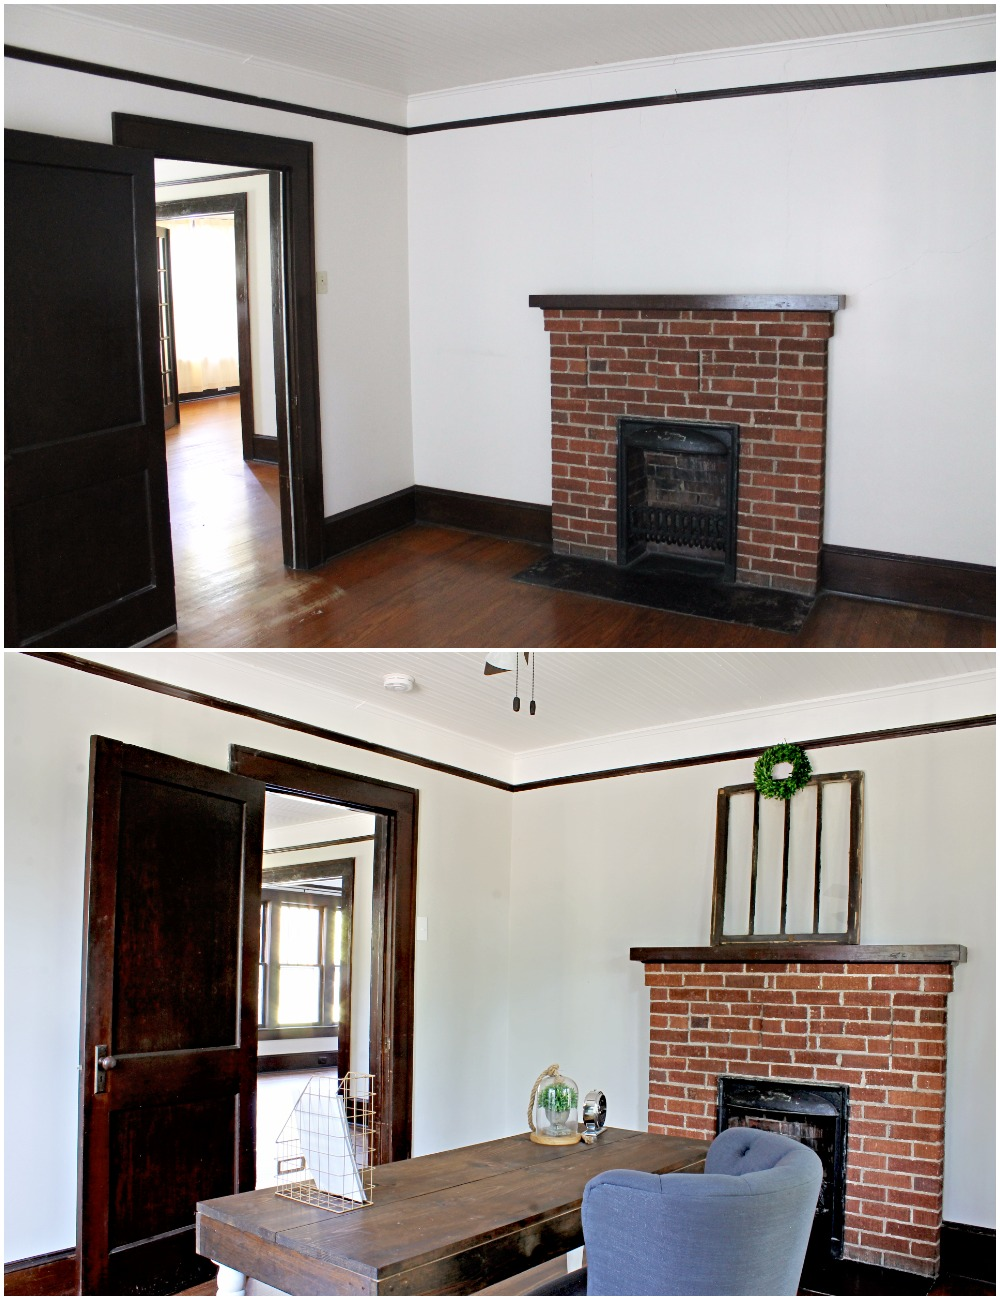 House Flipping Before and Afters - DIY OFFICE BUDGET DECORATING IDEAS (3).jpg